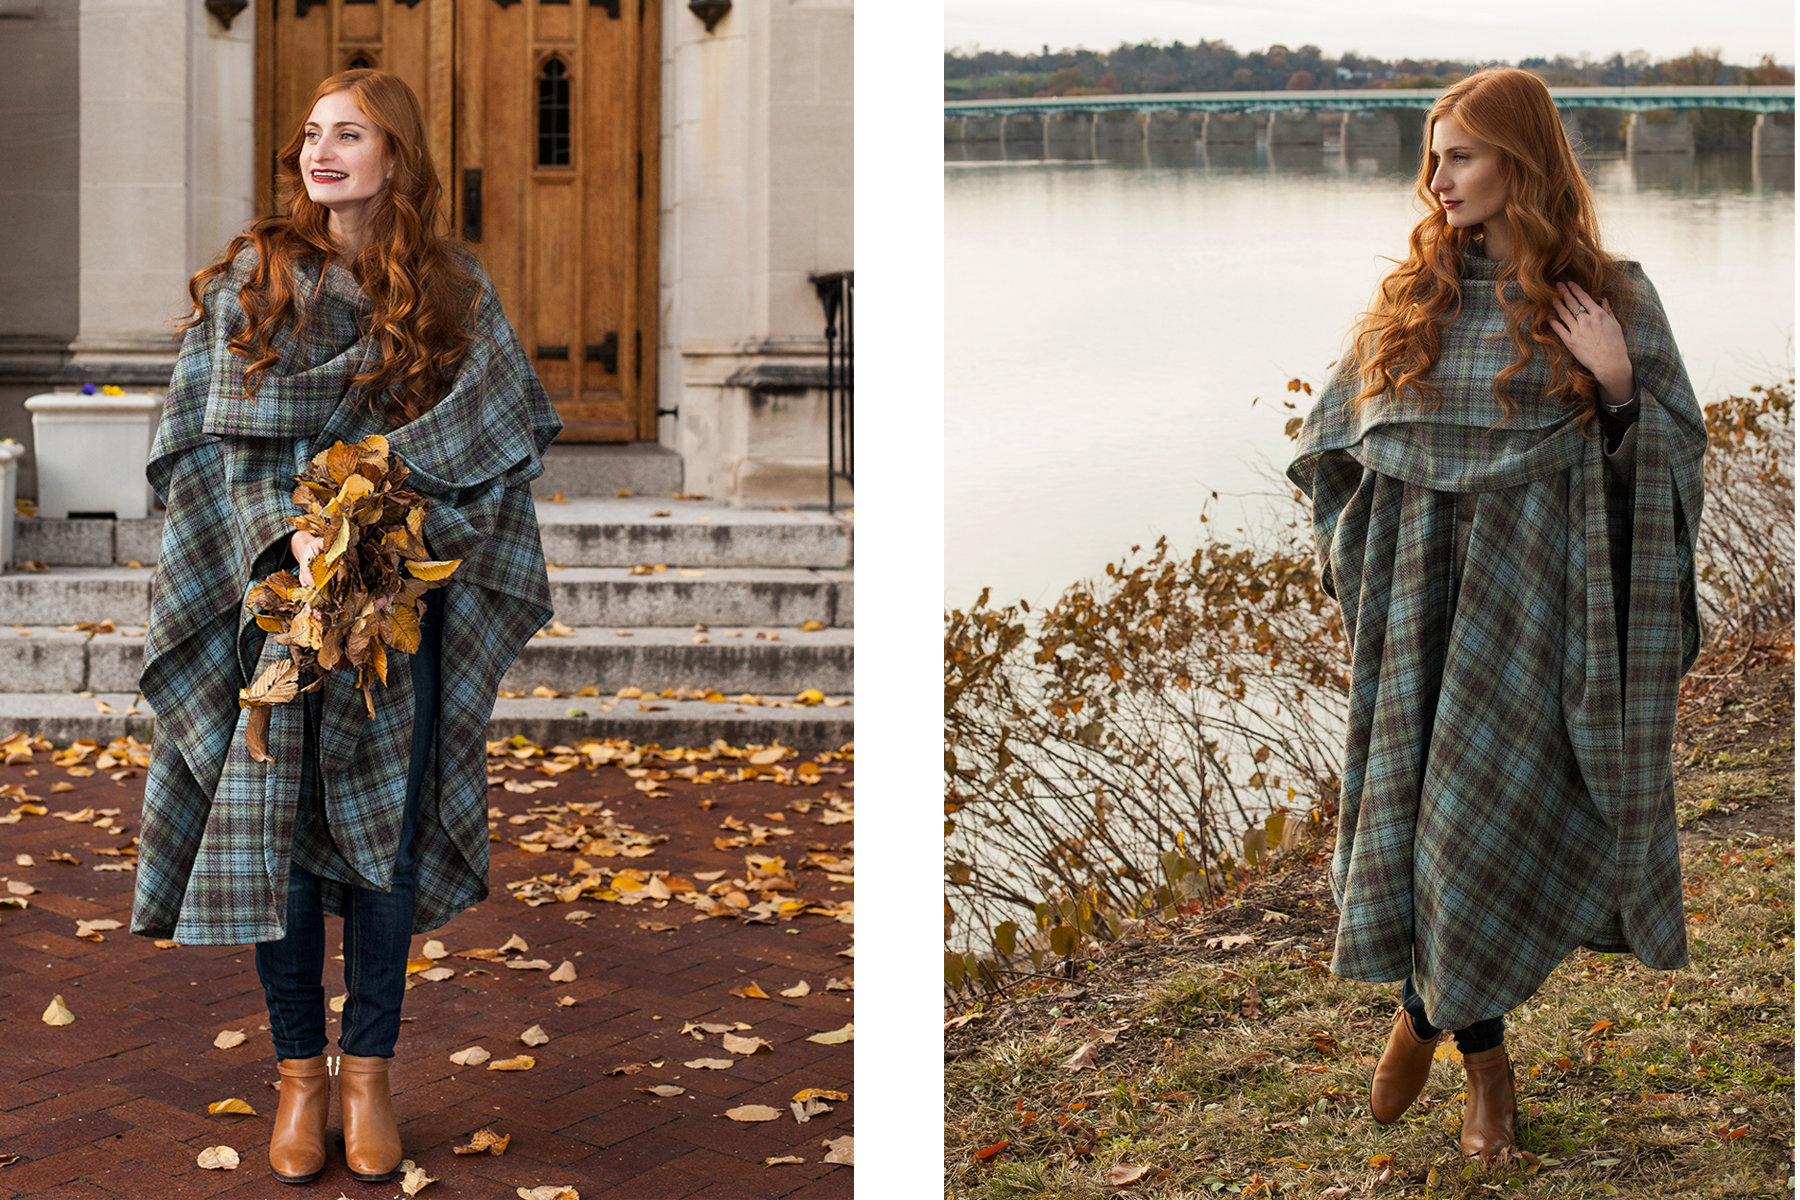 redhead girl in blue and green poncho with leaves